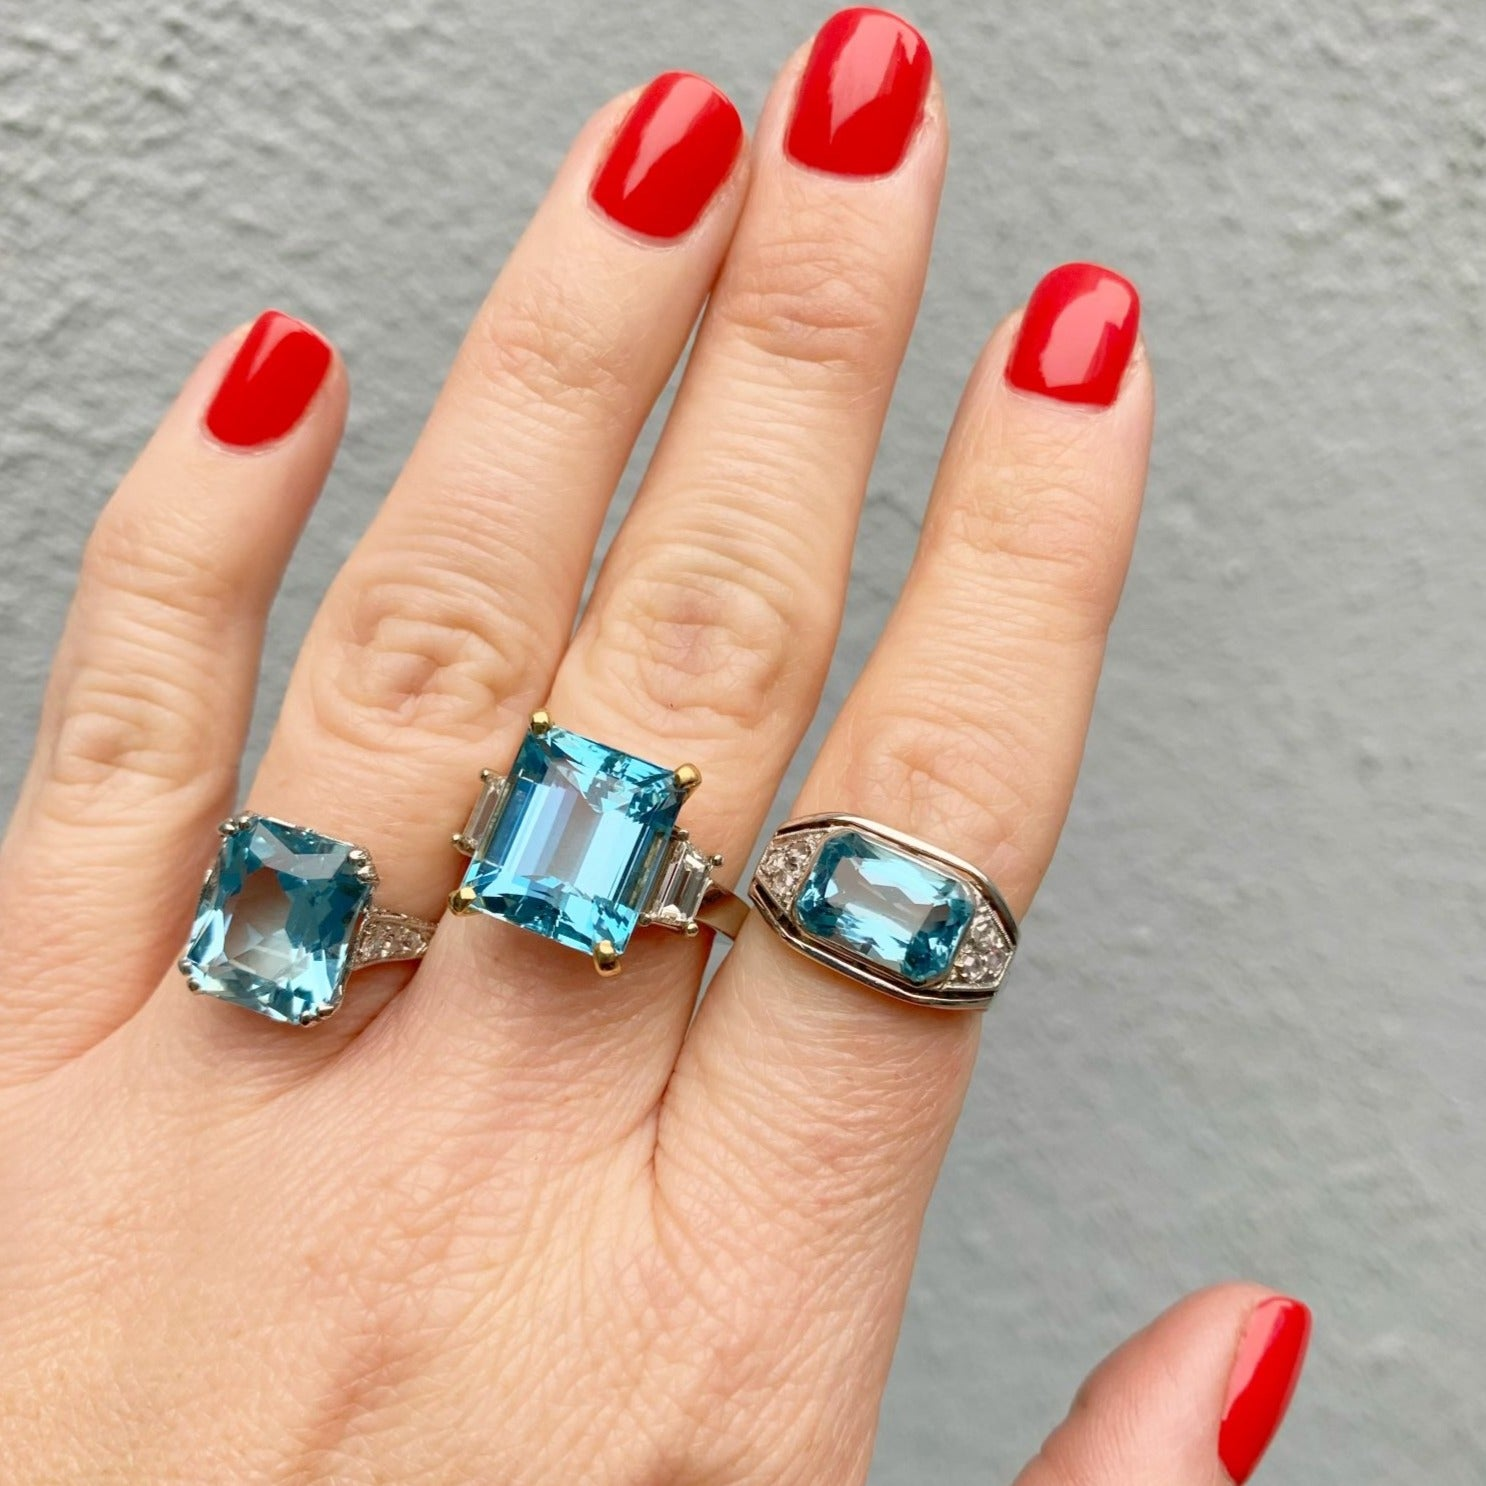 From our estate & antique collection, this ring features an emerald-cut blue aquamarine center secured by yellow gold prongs. The center is flanked on either side by a prong-set trapezoid cut diamond in an 18K white gold mounting.  Total aquamarine weight: 9.04ct  Color: blue, medium tone, strong saturation  Clarity: eye clean  Total diamond weight: 1.0ct  Color: G–H  Clarity: VS  Ring size: 7  Weight: 8.5g